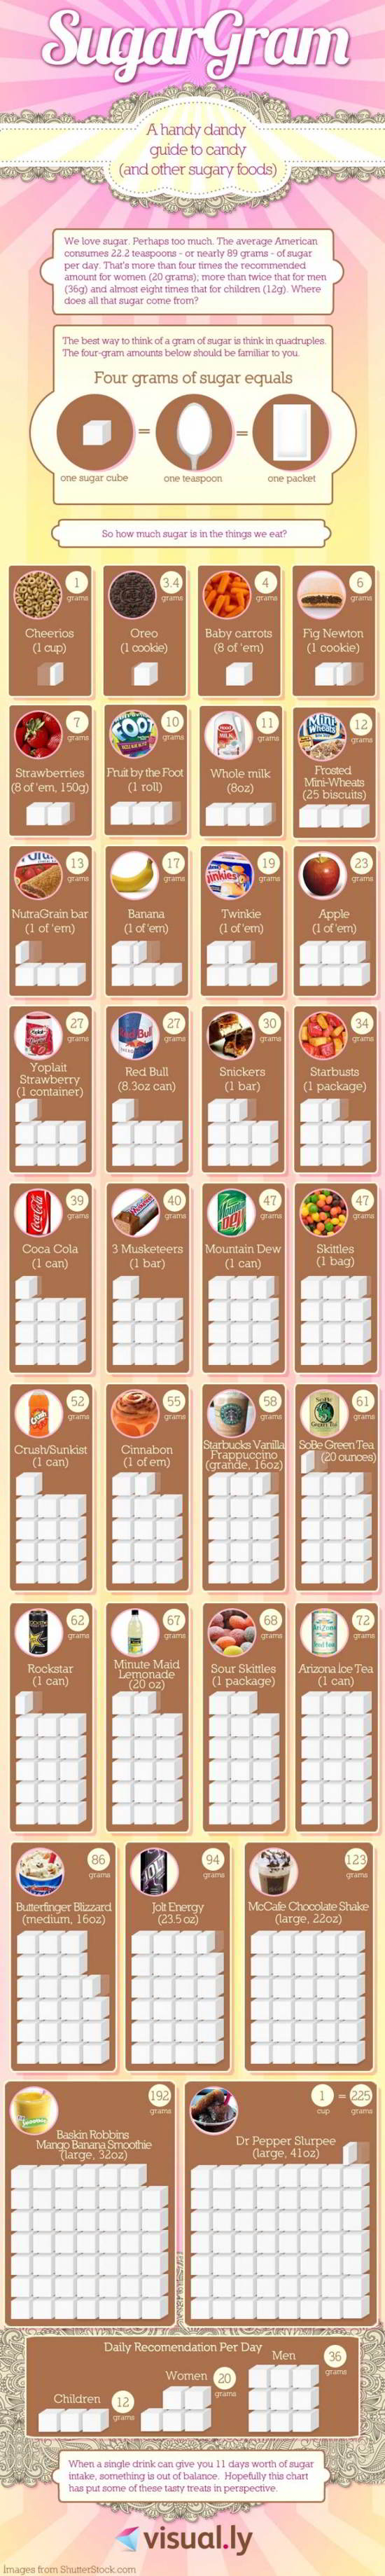 07 Your Guide to Sugar Infographic